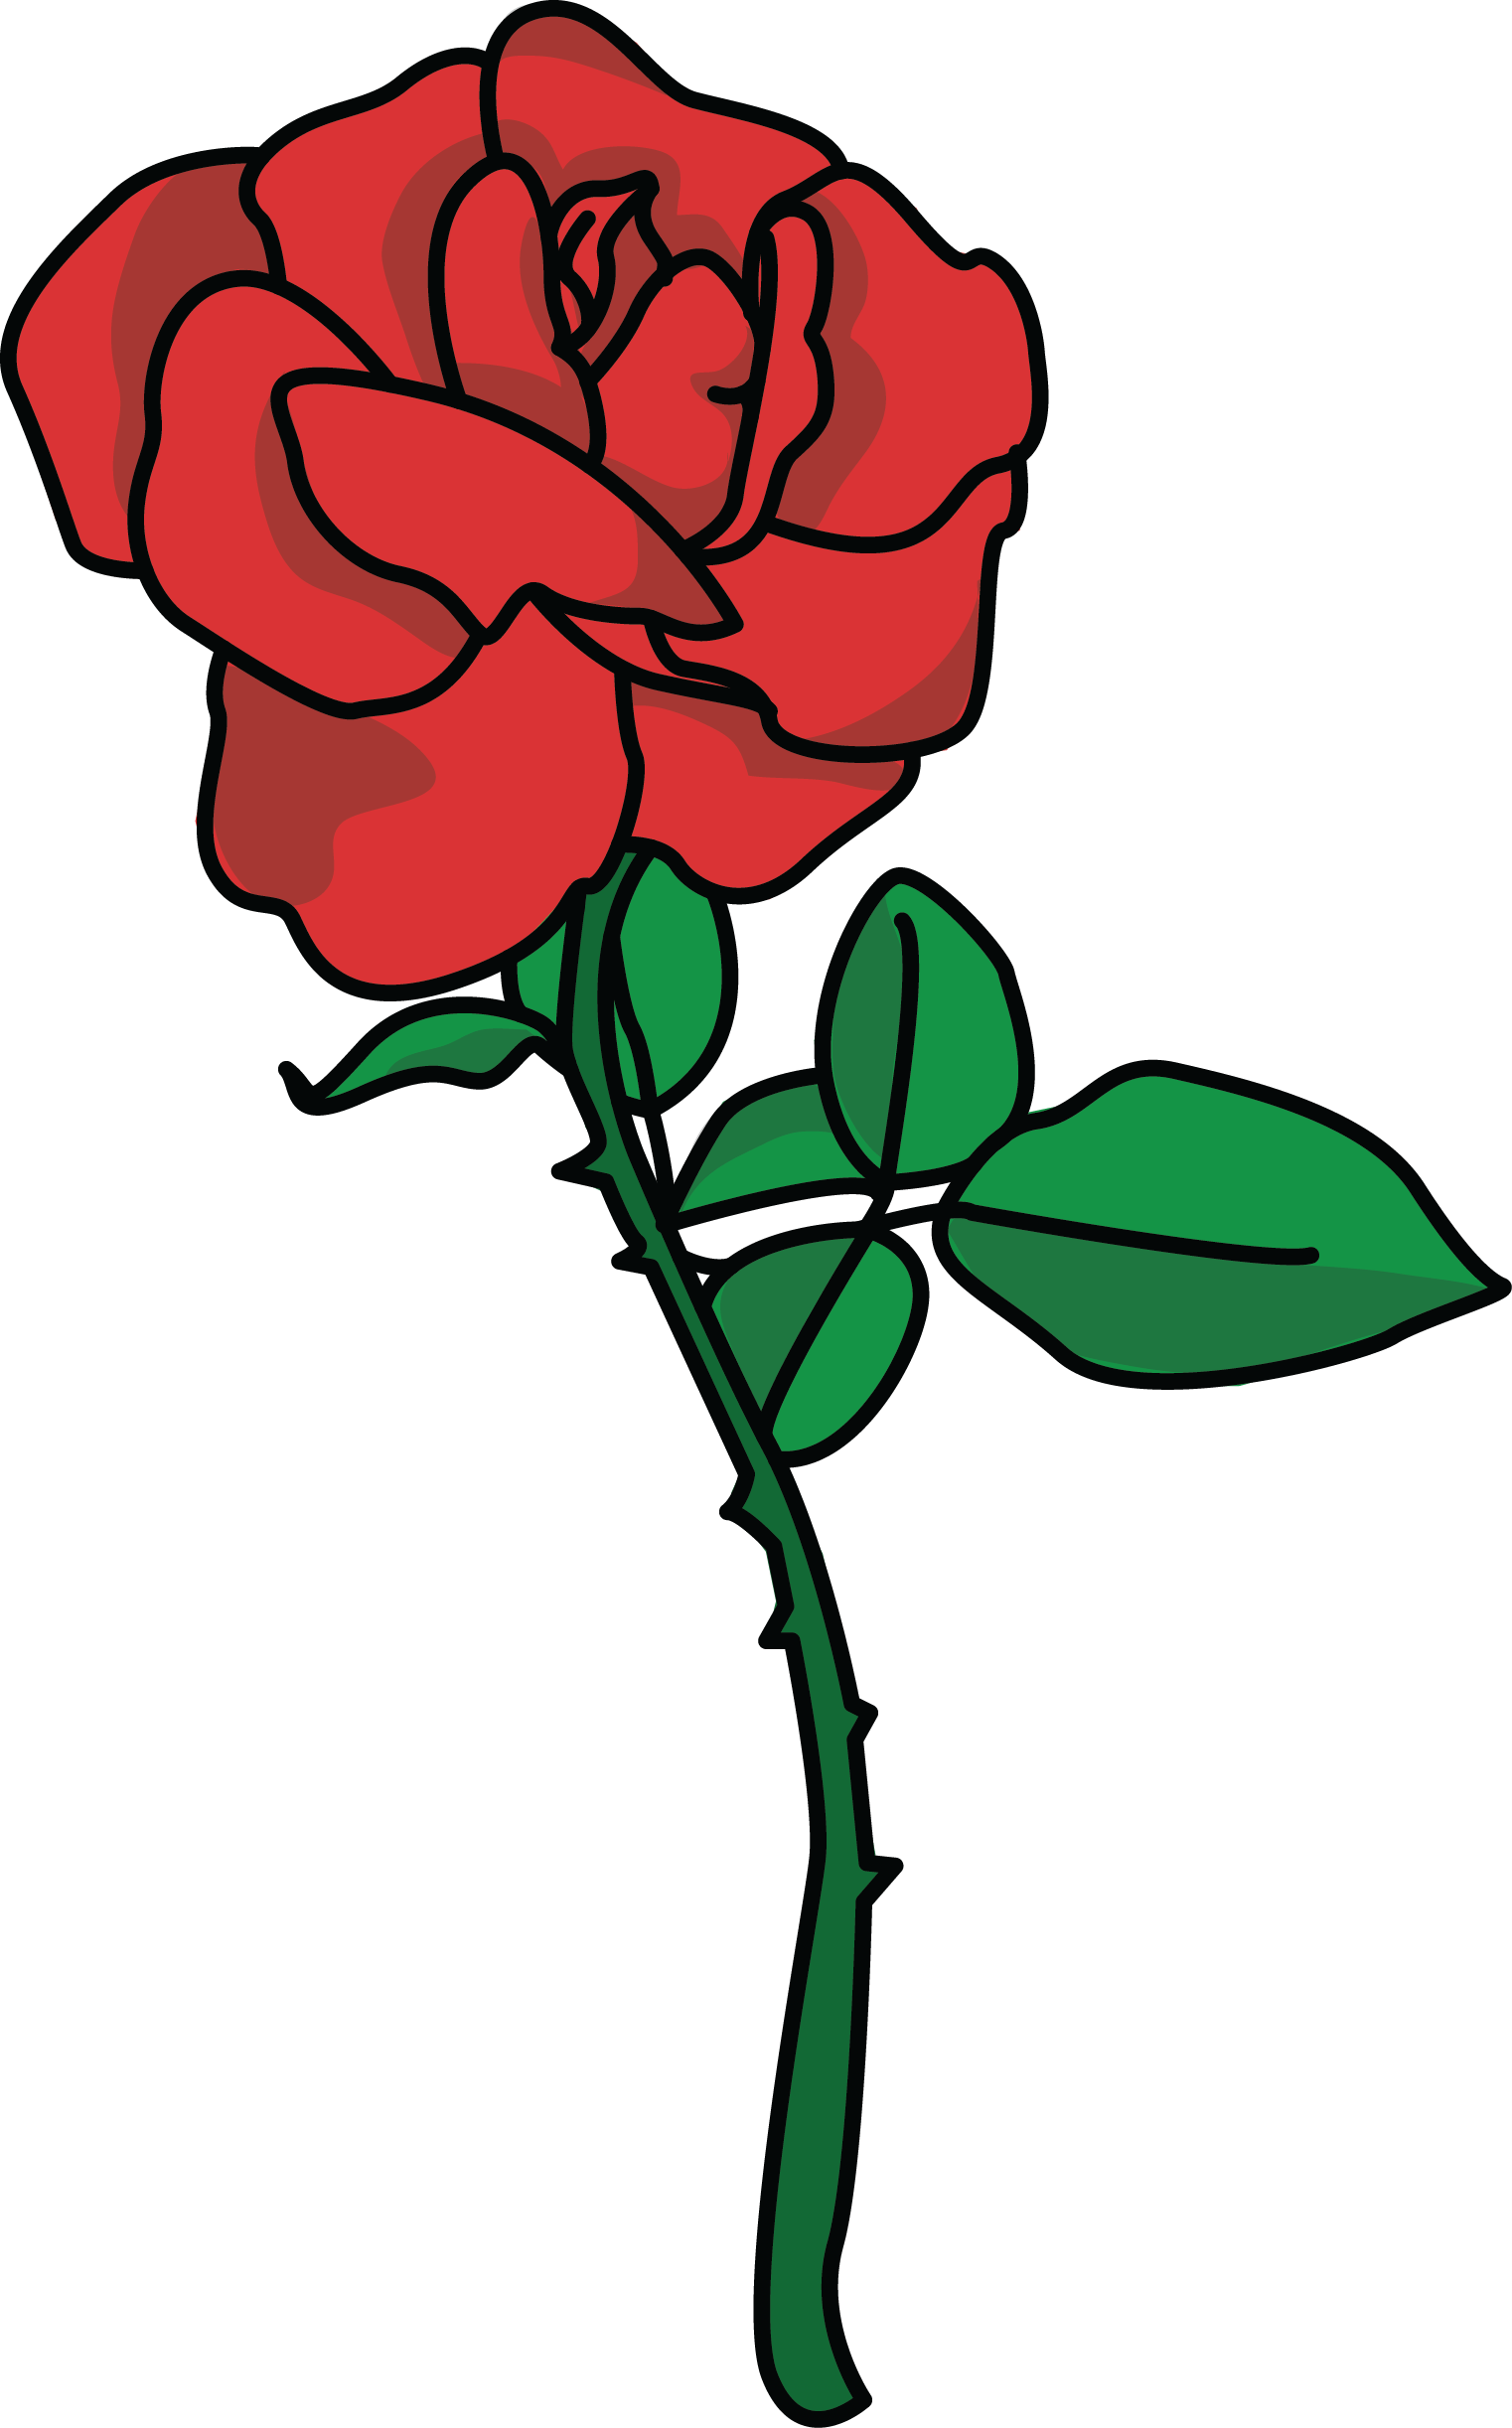 image for free rose love clip art love clip art free download rh pinterest com free high resolution graphics and clipart free high resolution graphics and clipart